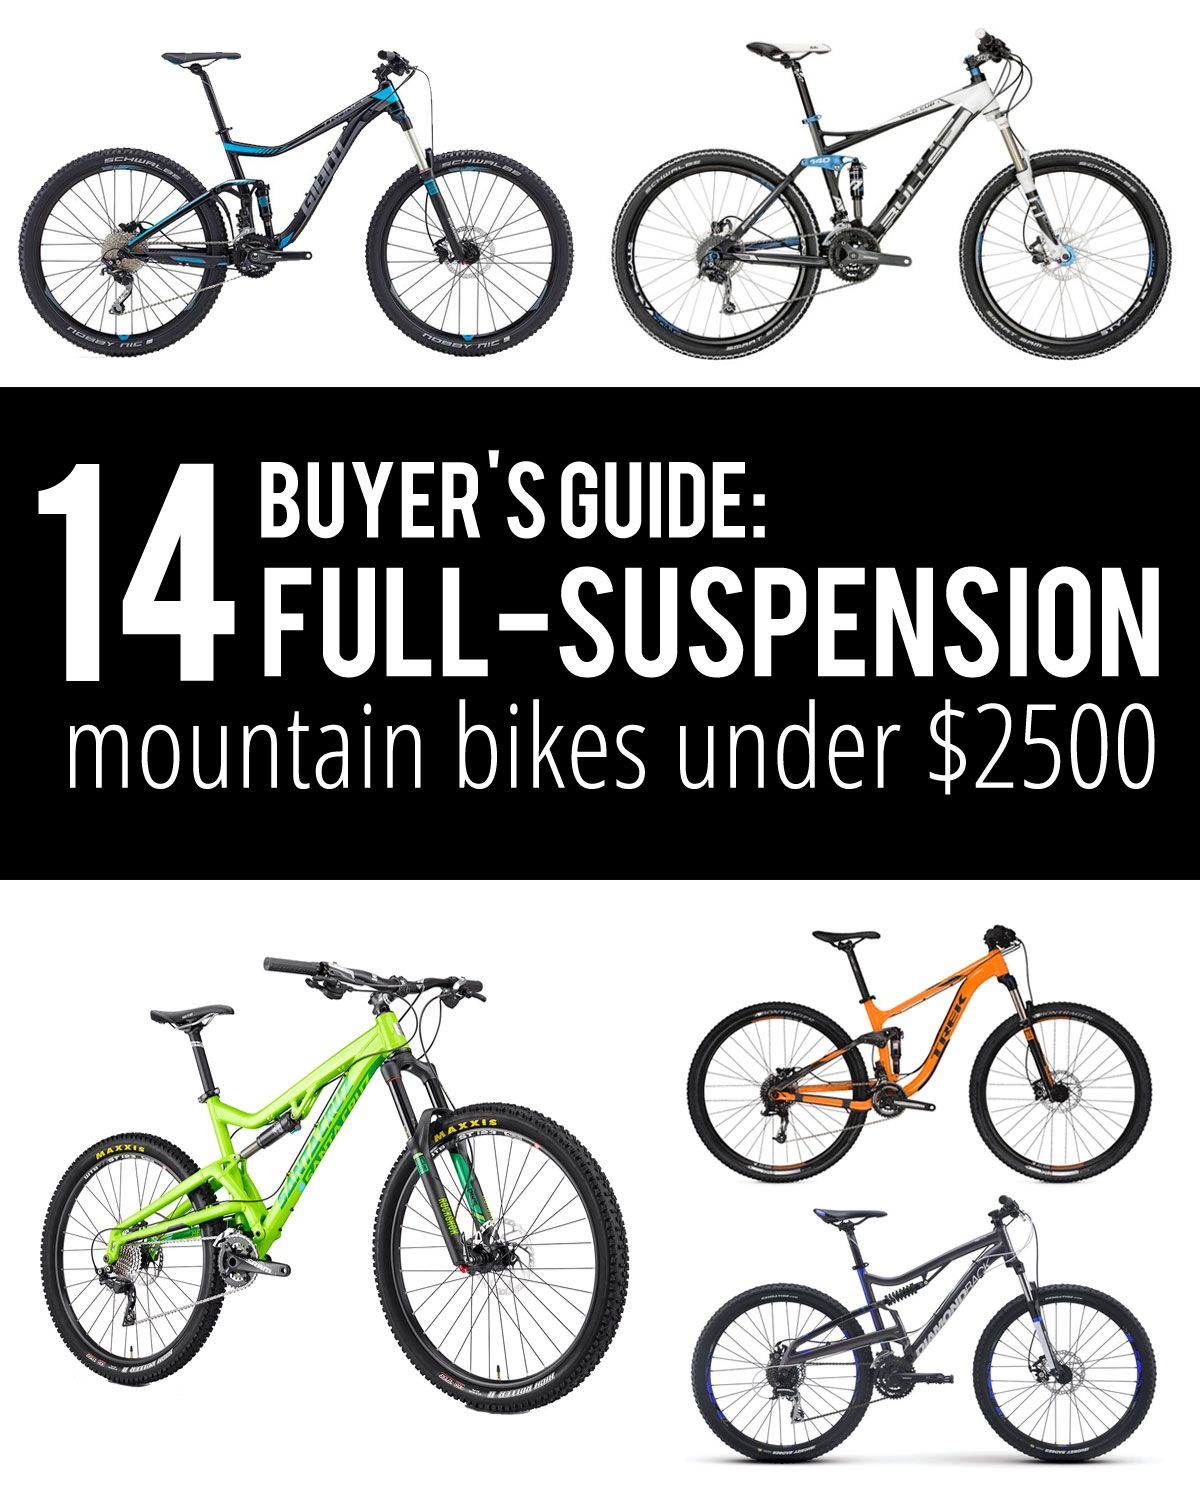 Buyer's Guide: Budget Full Suspension Mountain Bikes. Singletracks Mountain Bike News. Page 2.